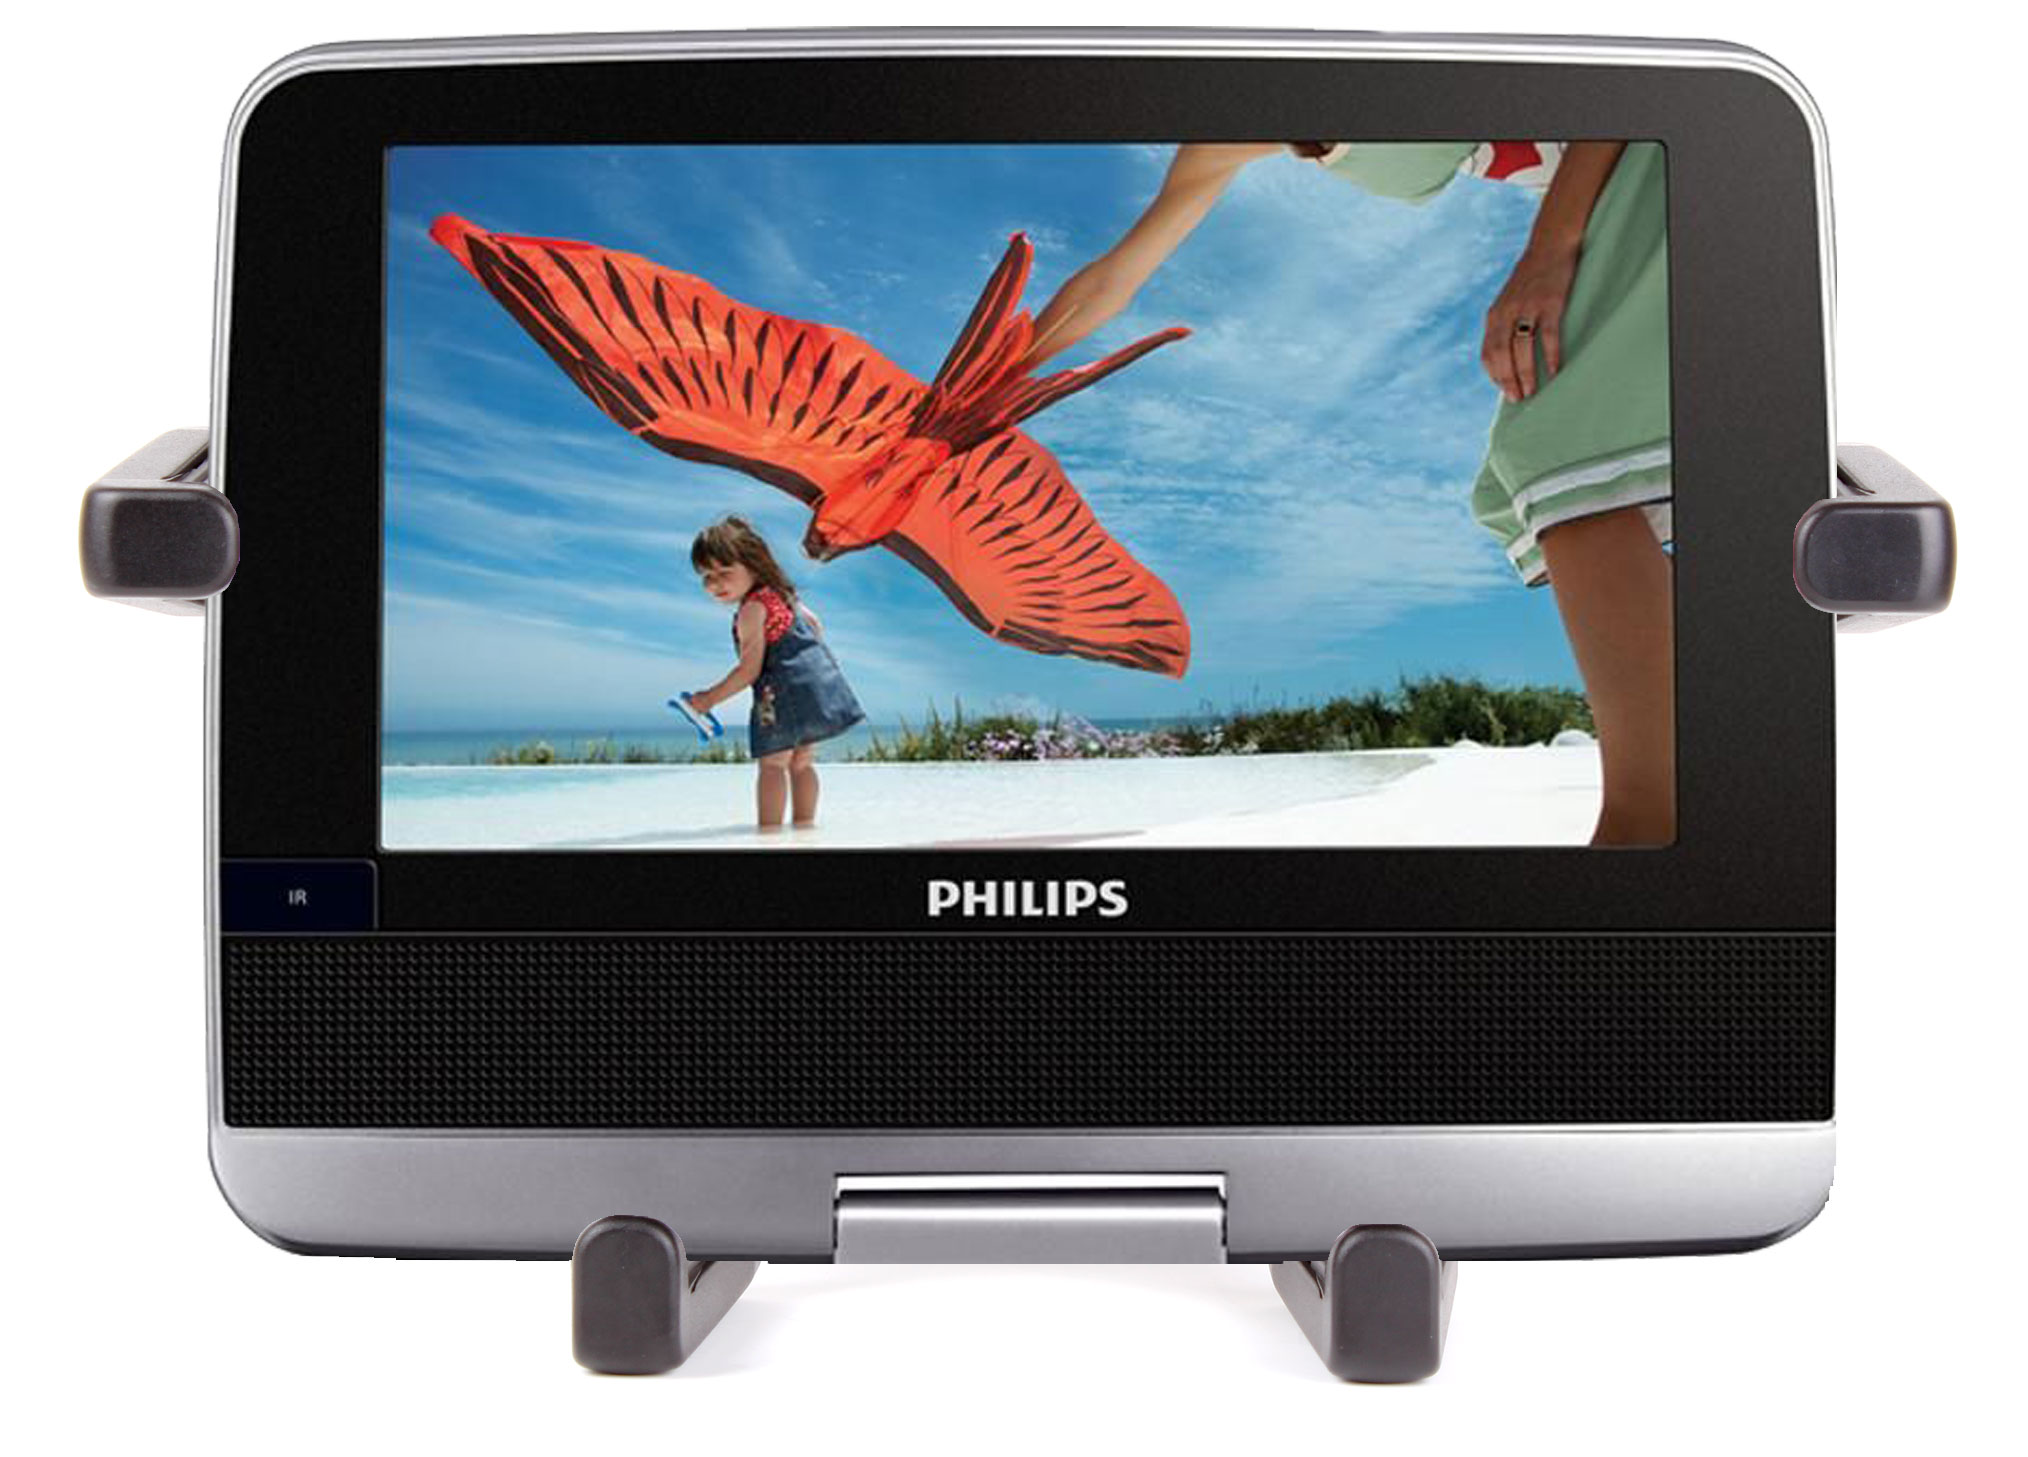 support appui t te voiture pour lecteur dvd philips pd7022 divx philips pet103 ebay. Black Bedroom Furniture Sets. Home Design Ideas